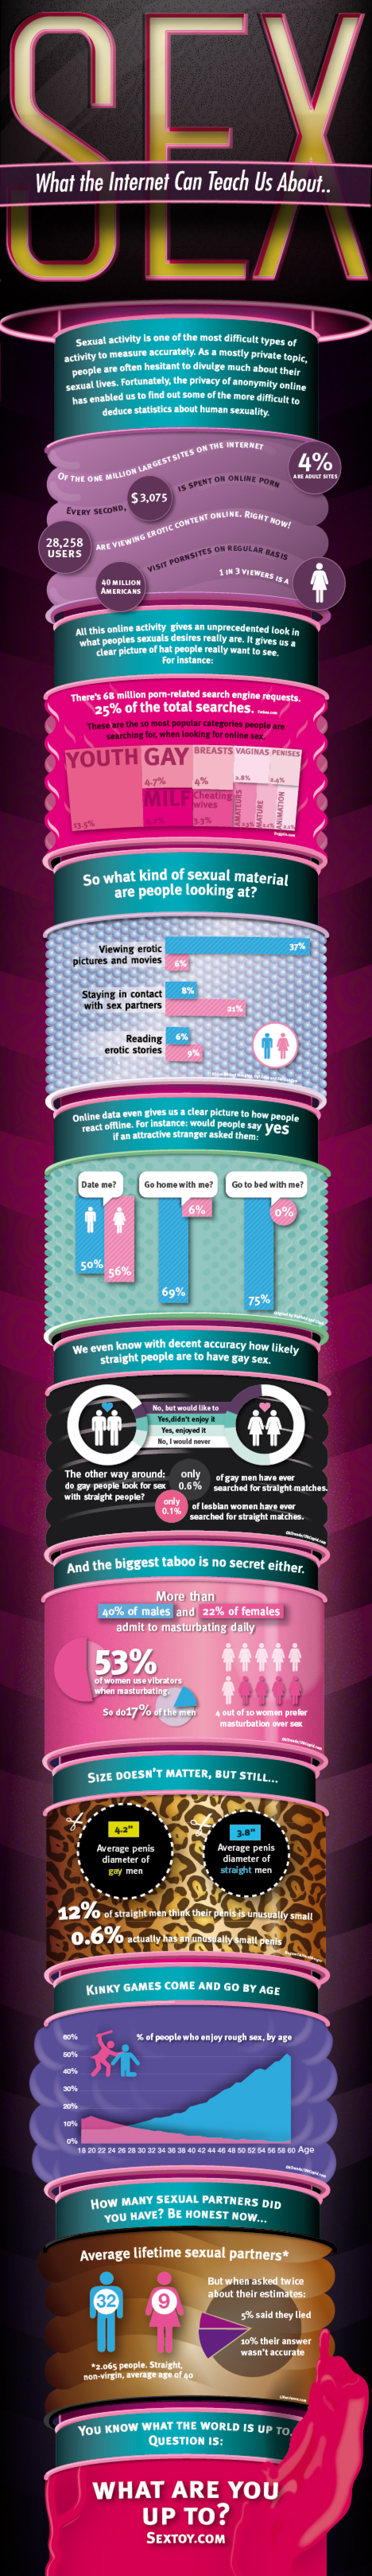 What the Internet Can Teach Us About Sex Infographic